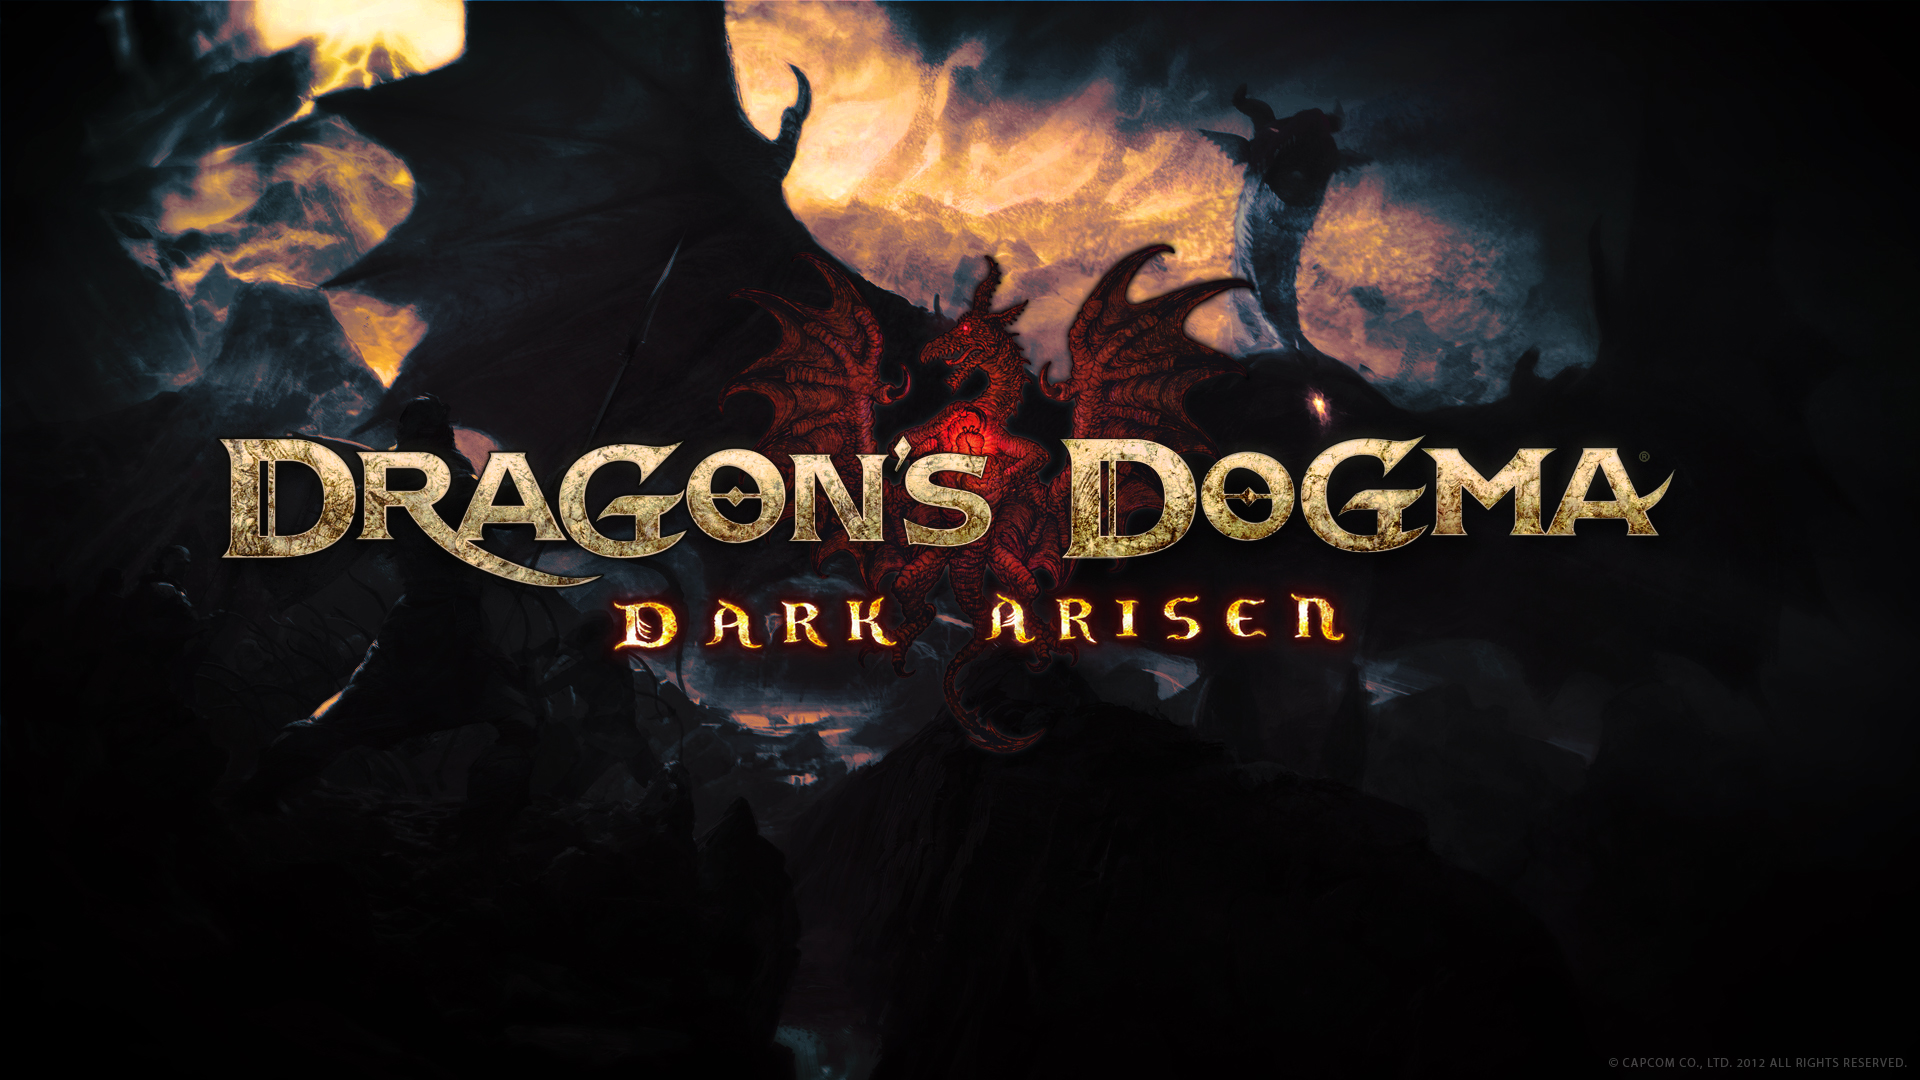 Dragon's DogmaDark ArisenCapcom